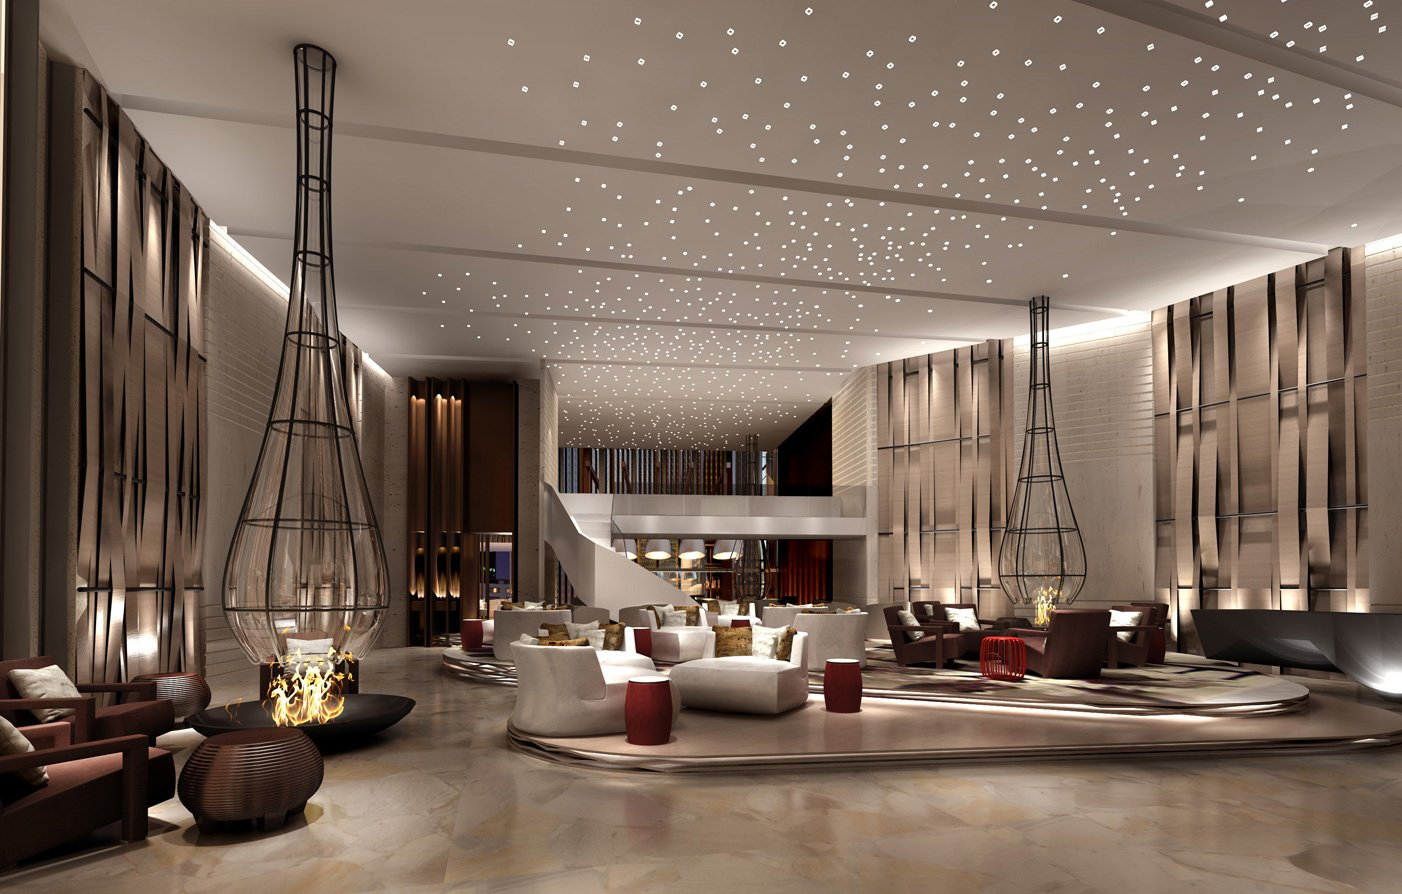 Himalayas Hotels Amp Communities An Exciting New Chinese